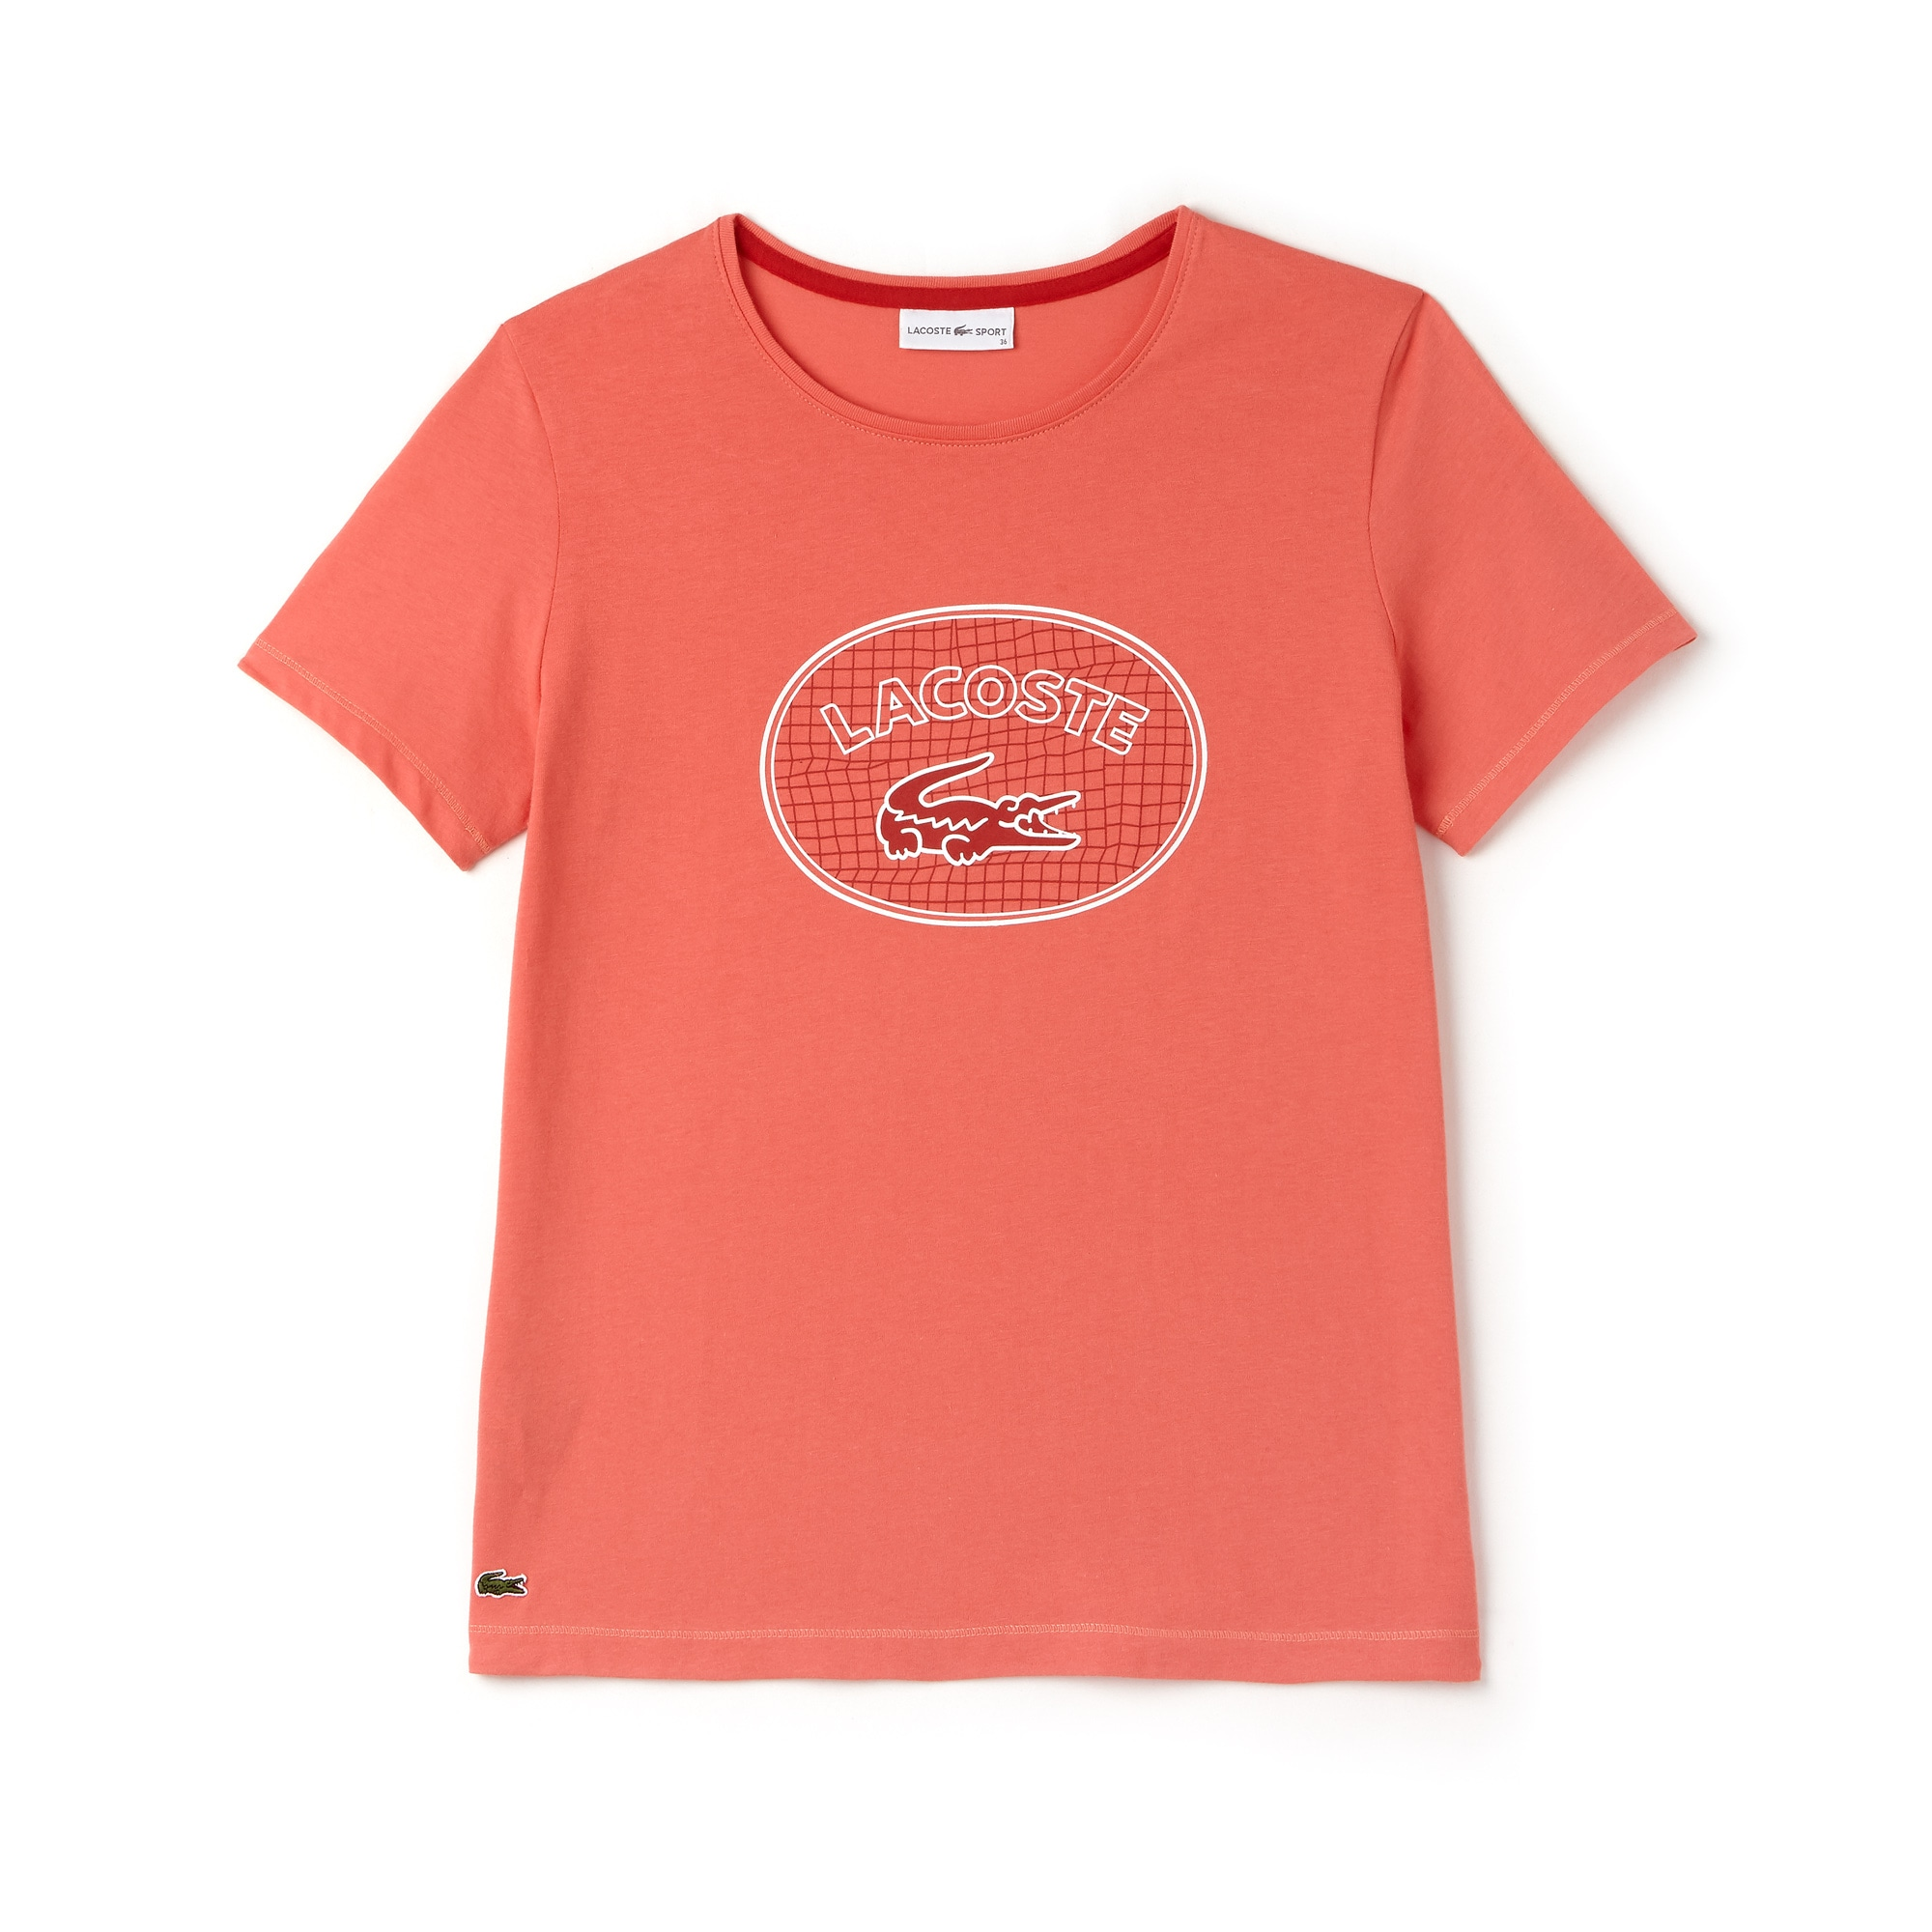 Women's SPORT Oversized Logo Design Jersey Tennis T-shirt